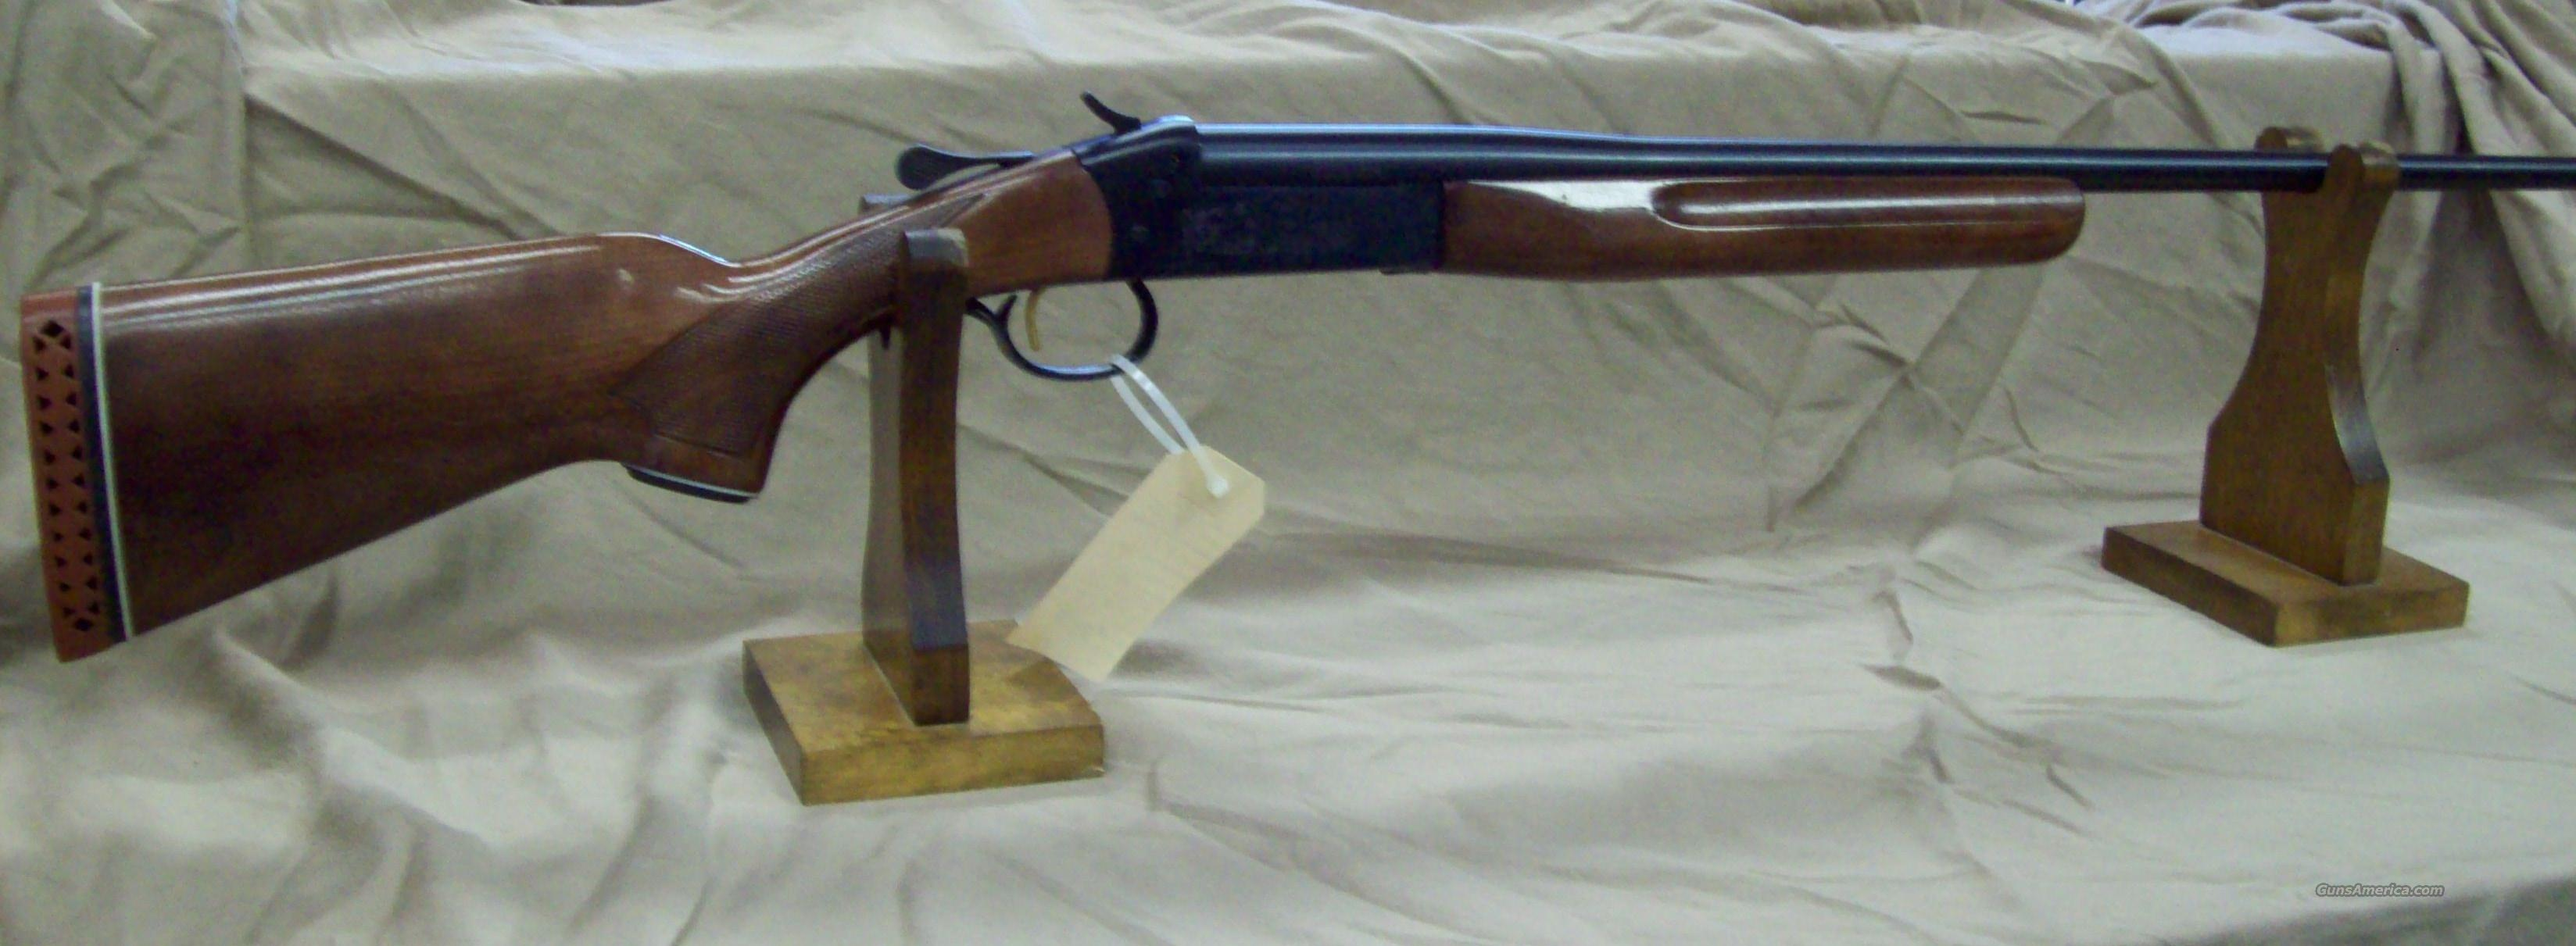 "Winchester 37A Youth .410 3"" Very Nice!!  Guns > Shotguns > Winchester Shotguns - Modern > Bolt/Single Shot"